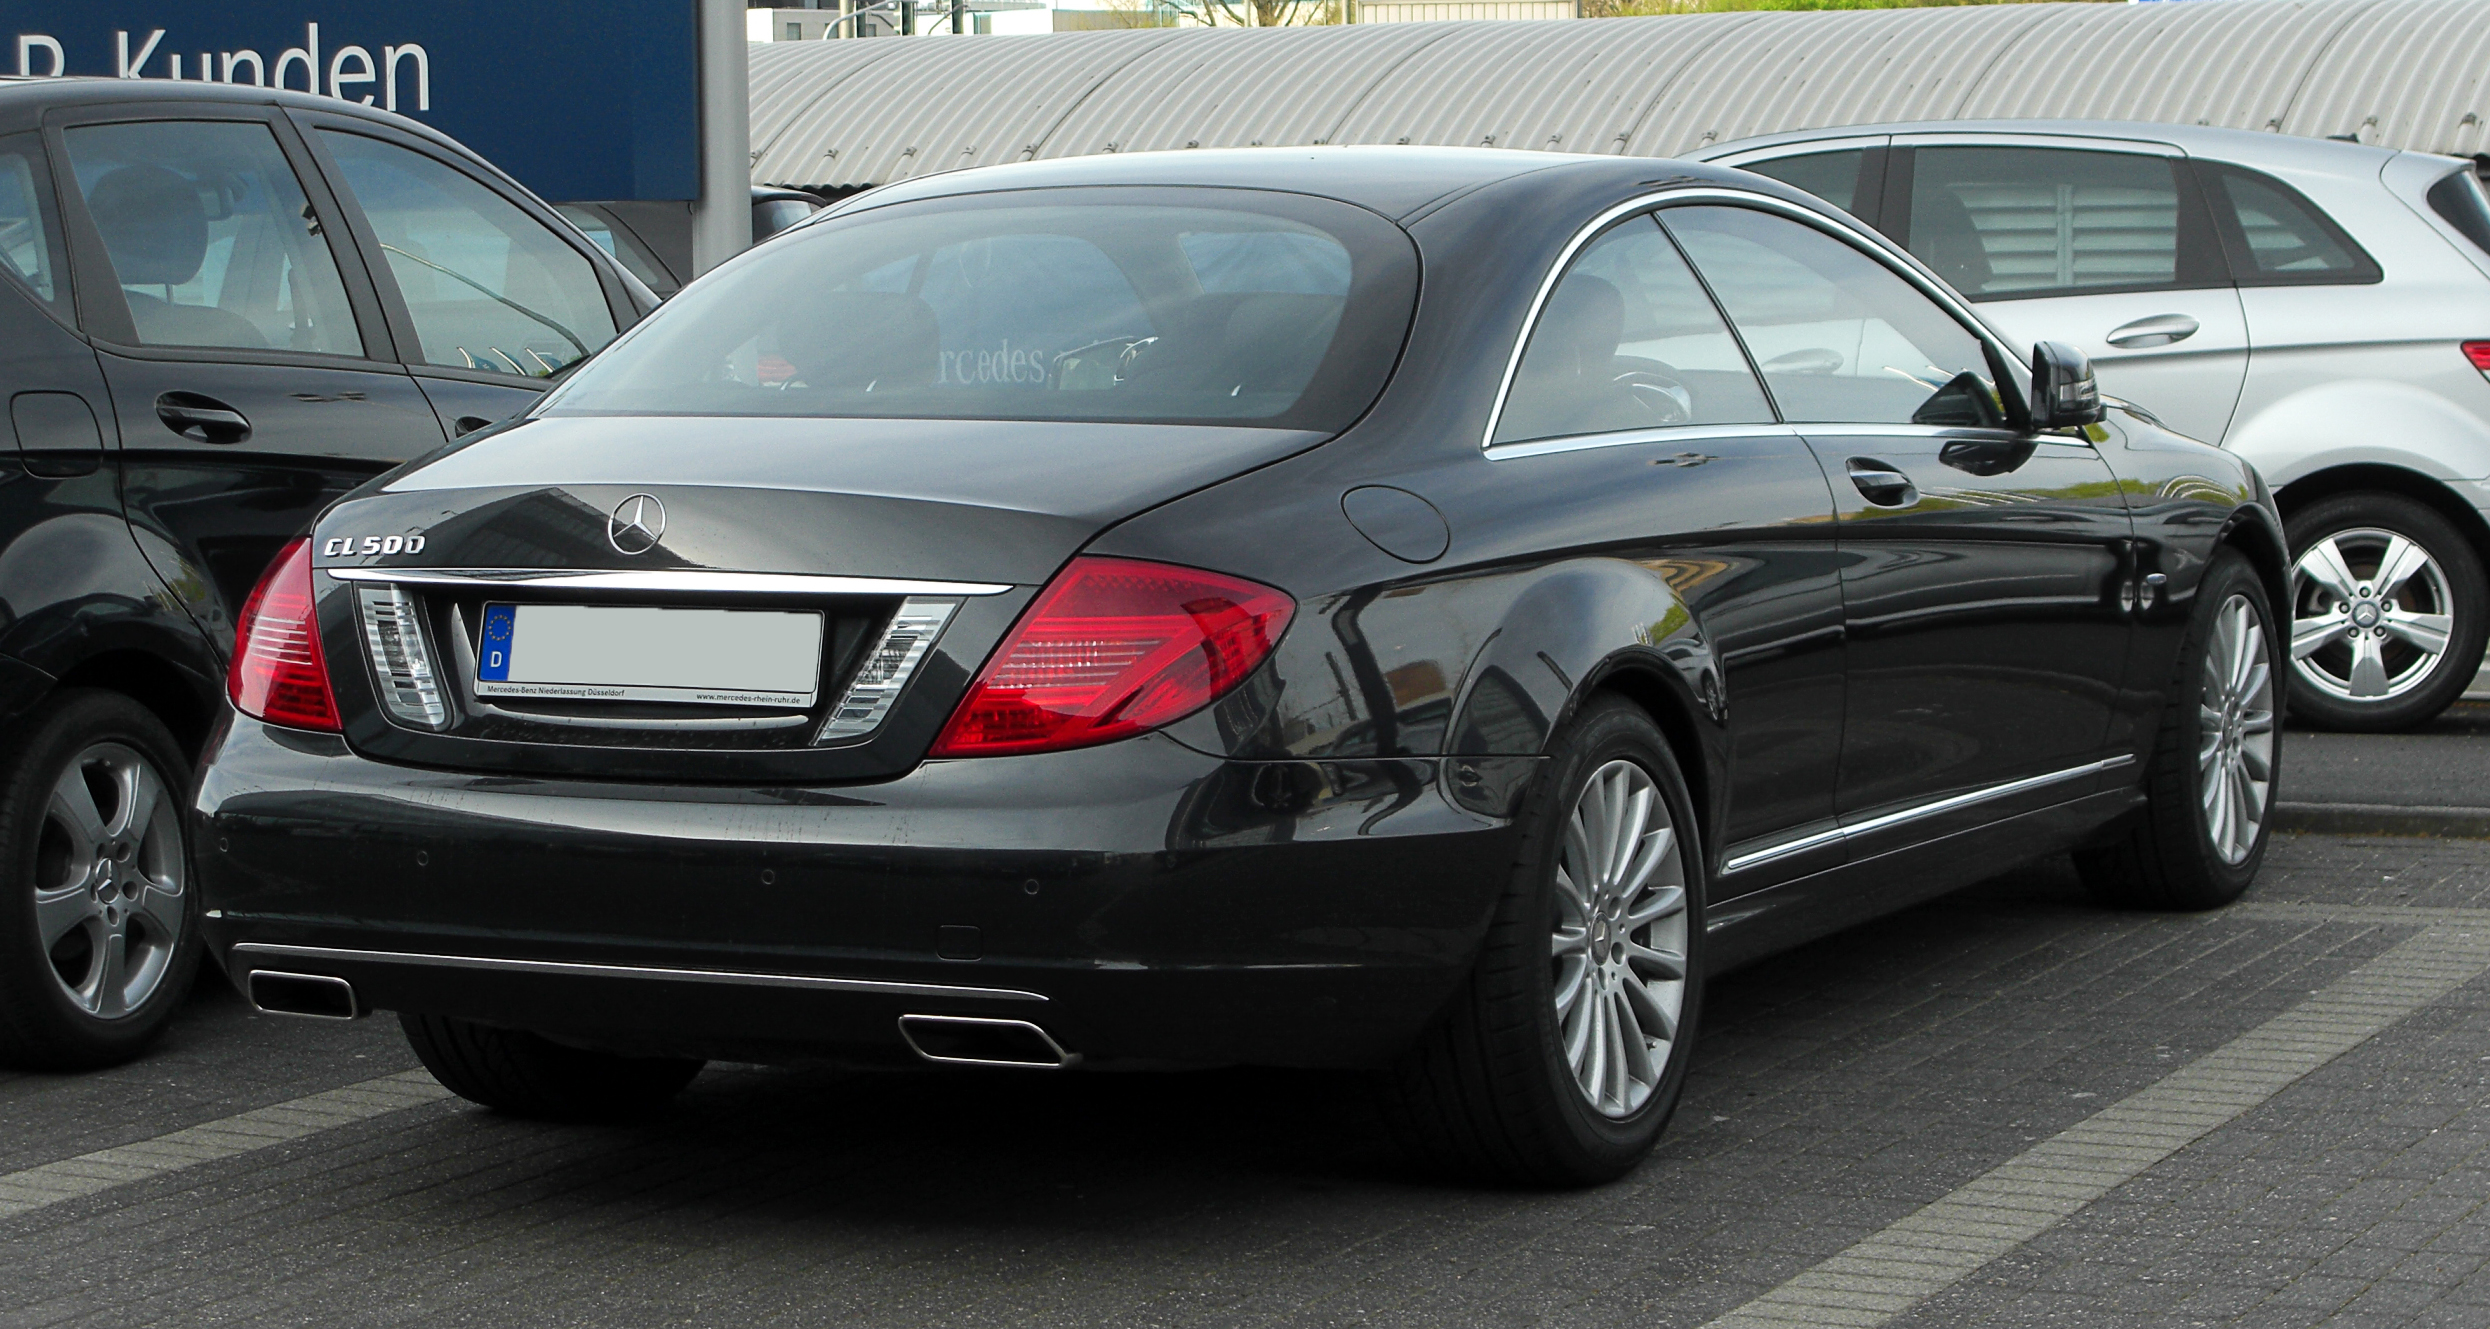 mercedes benz cl 500 blueefficiency c 216 facelift